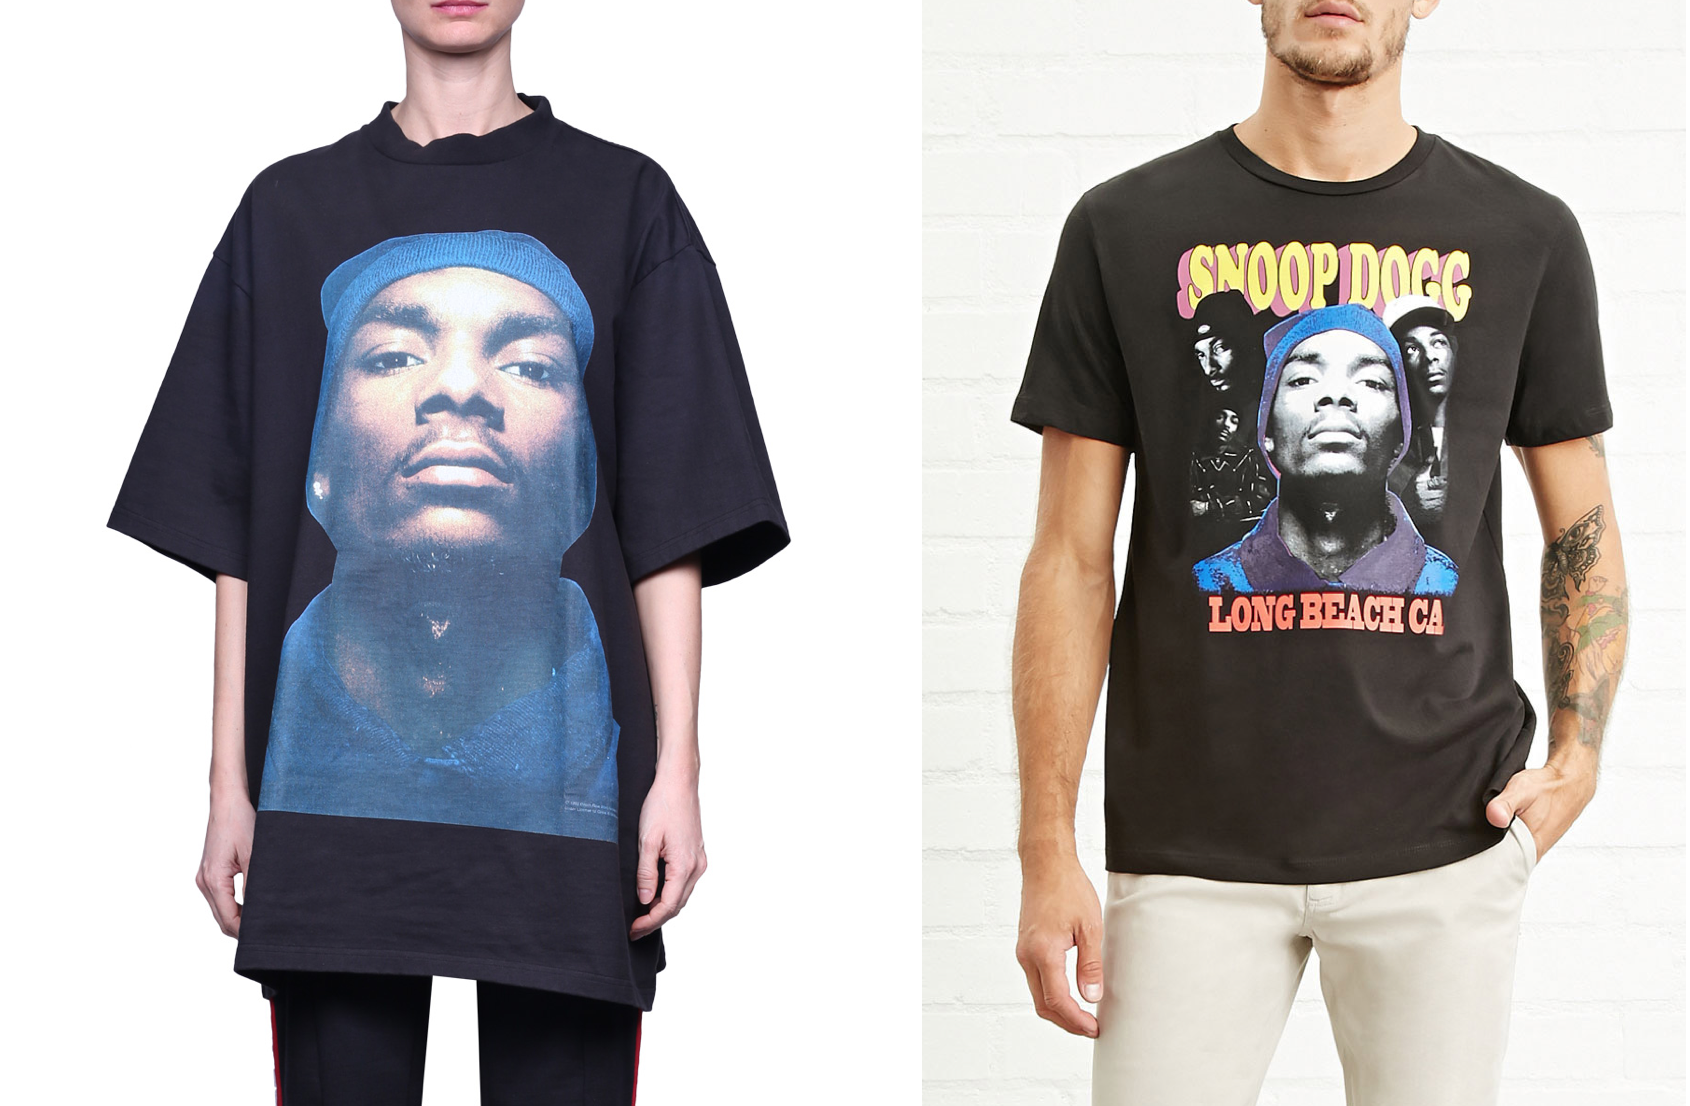 Vetements' tee (left) and Forever 21's (right)